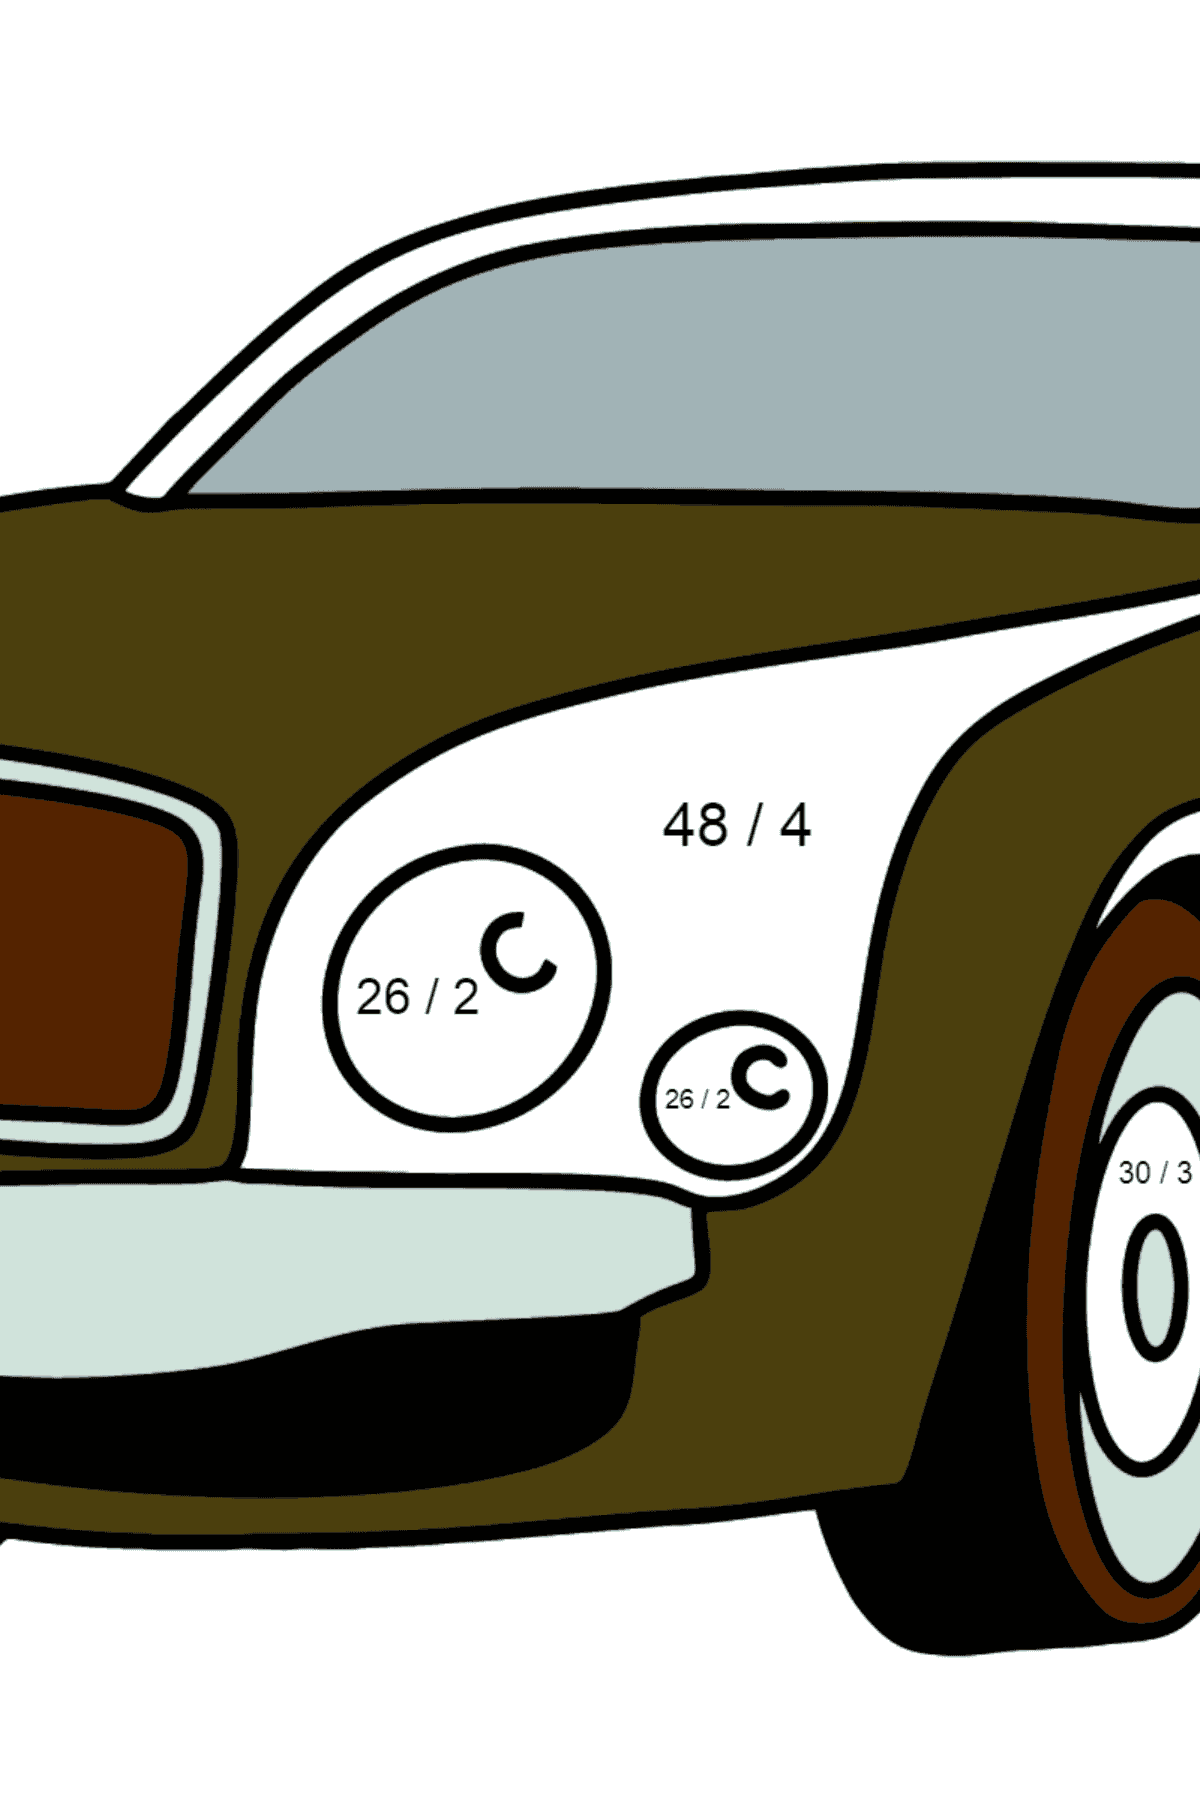 Bentley Mulsanne Car Coloring Page - Math Coloring - Division for Kids